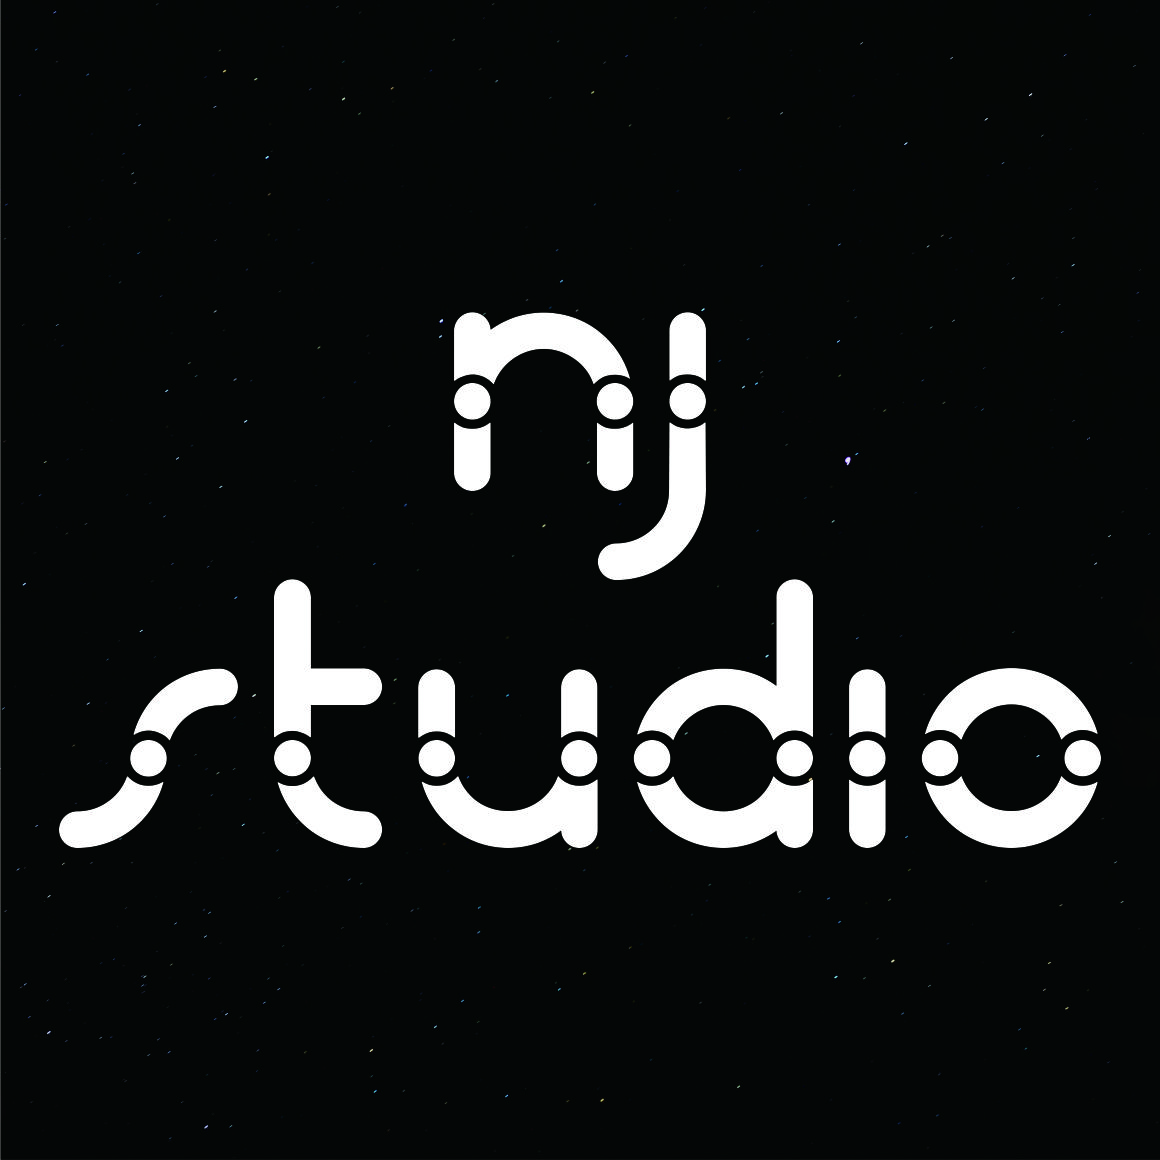 NJStudio's profile picture